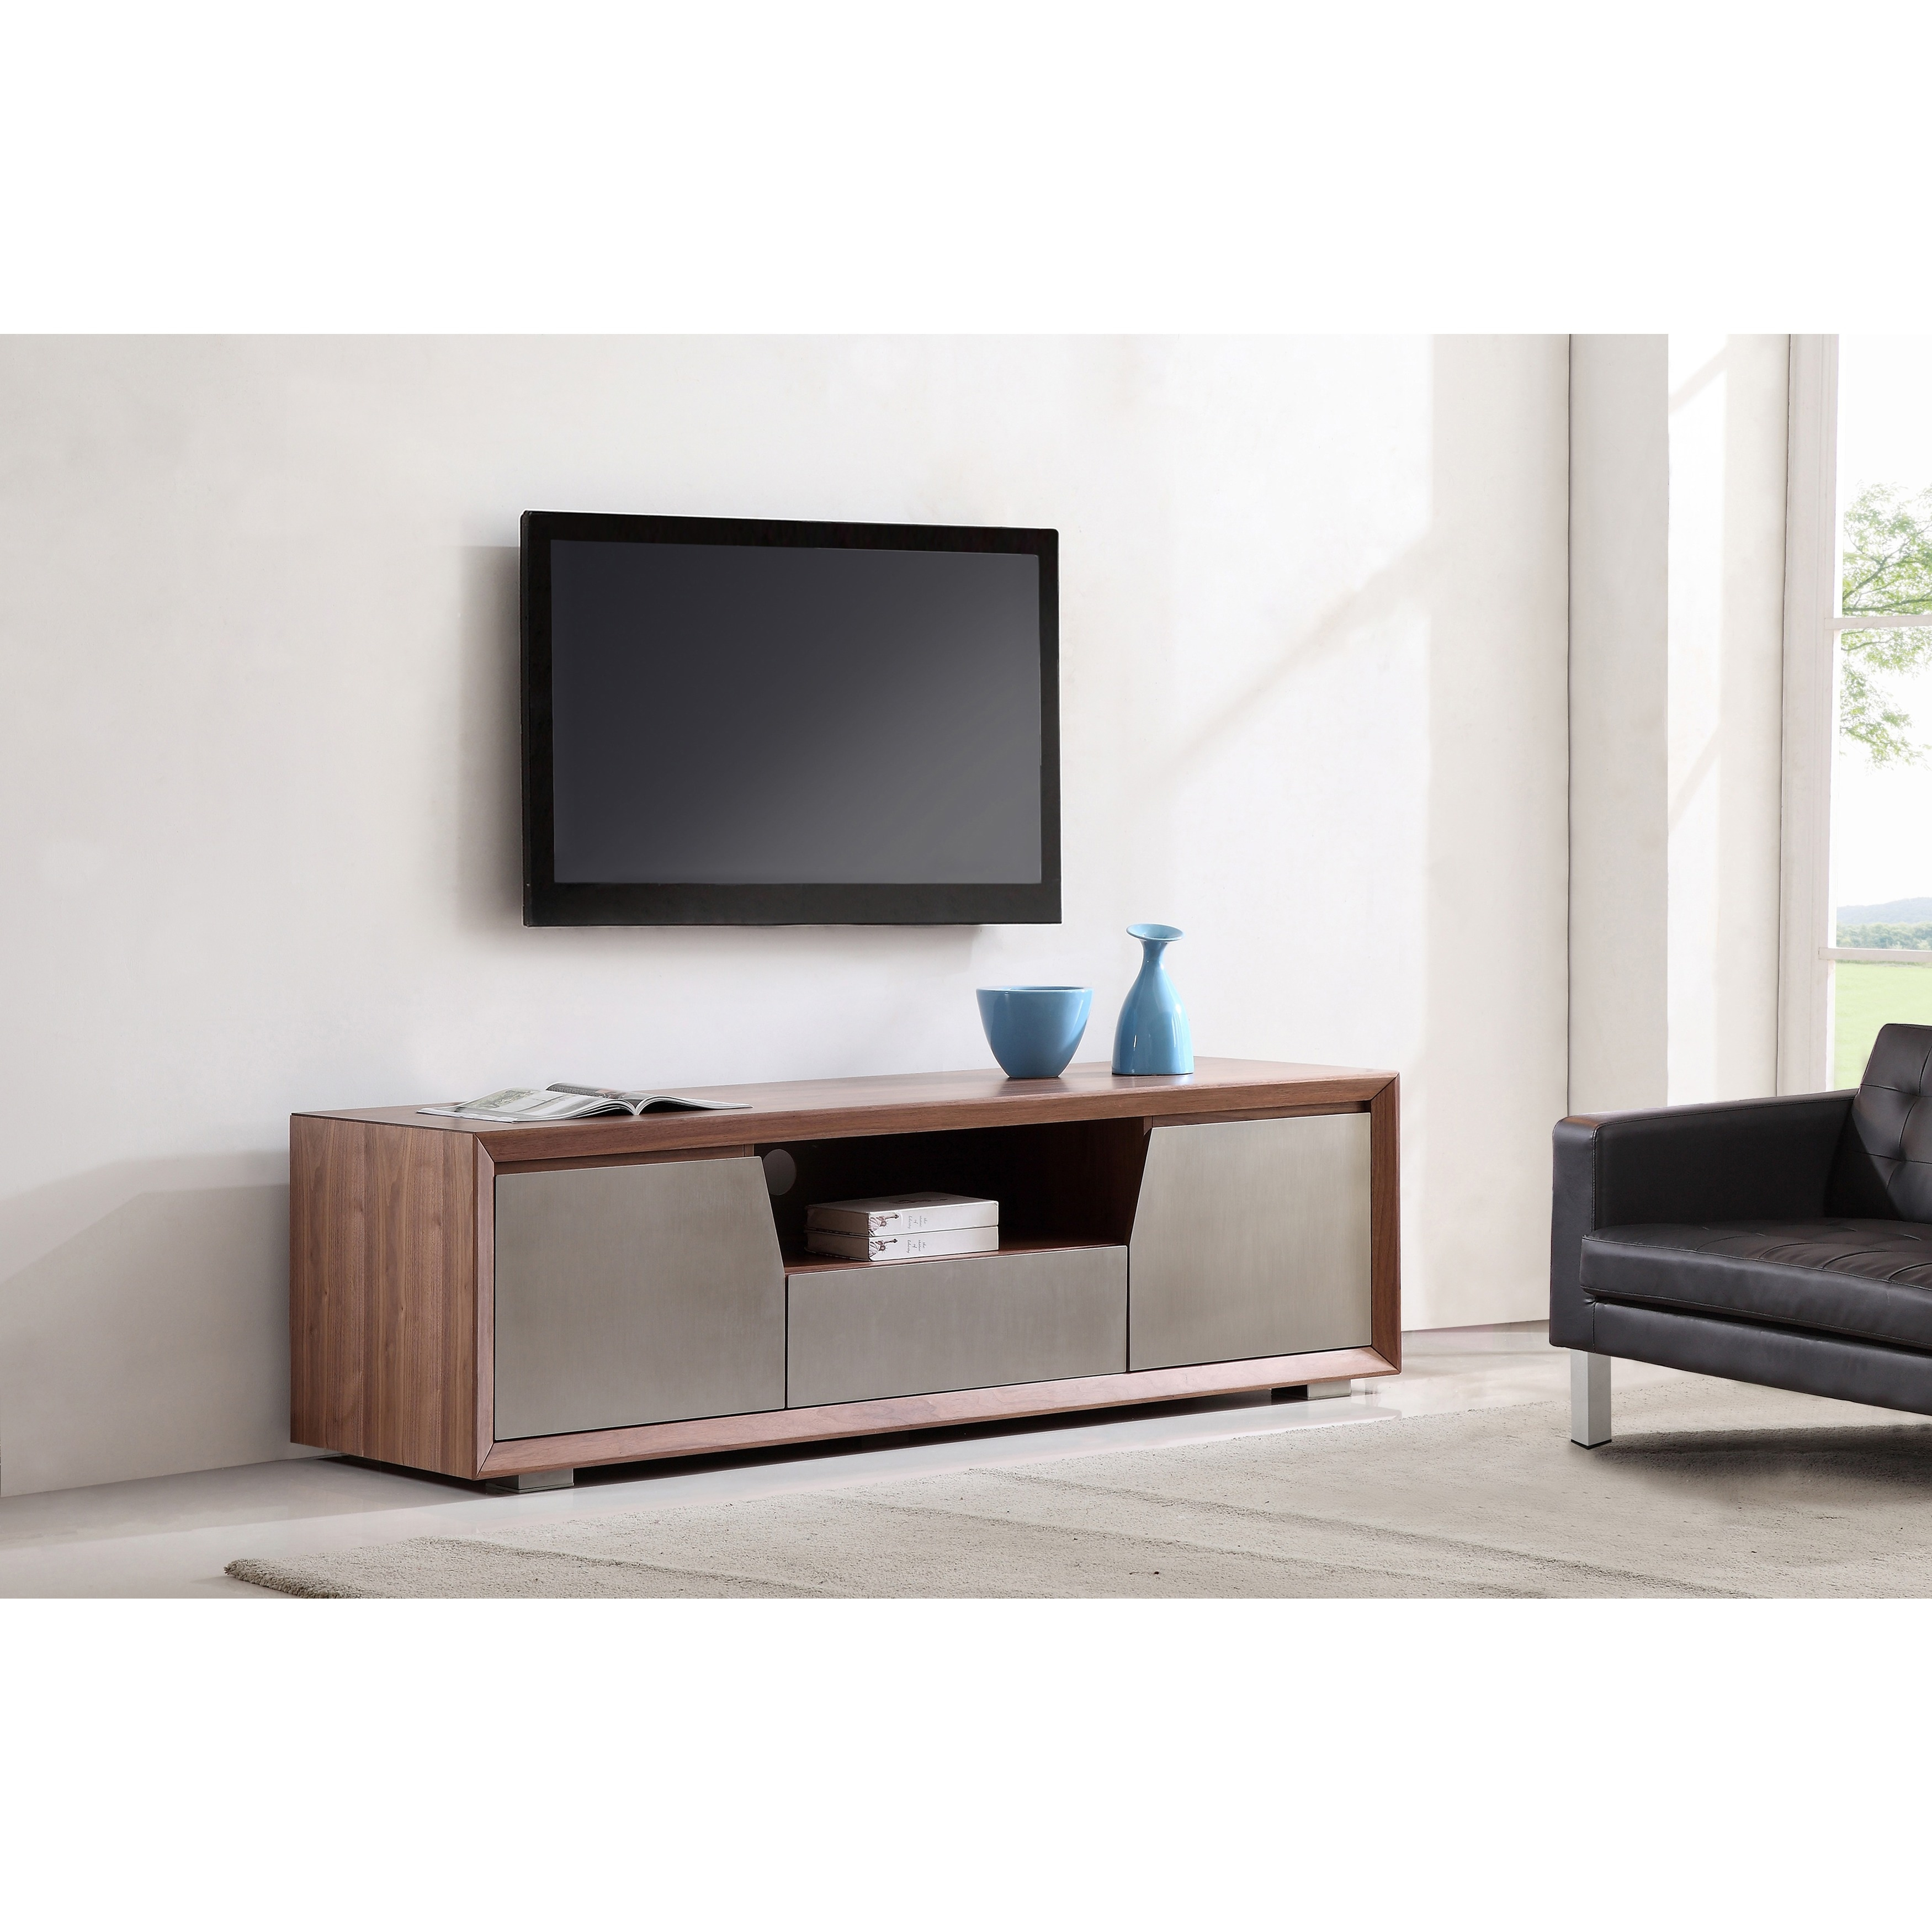 Element Light Walnut Stainless Steel Tv Stand On Free Shipping Today 7524406